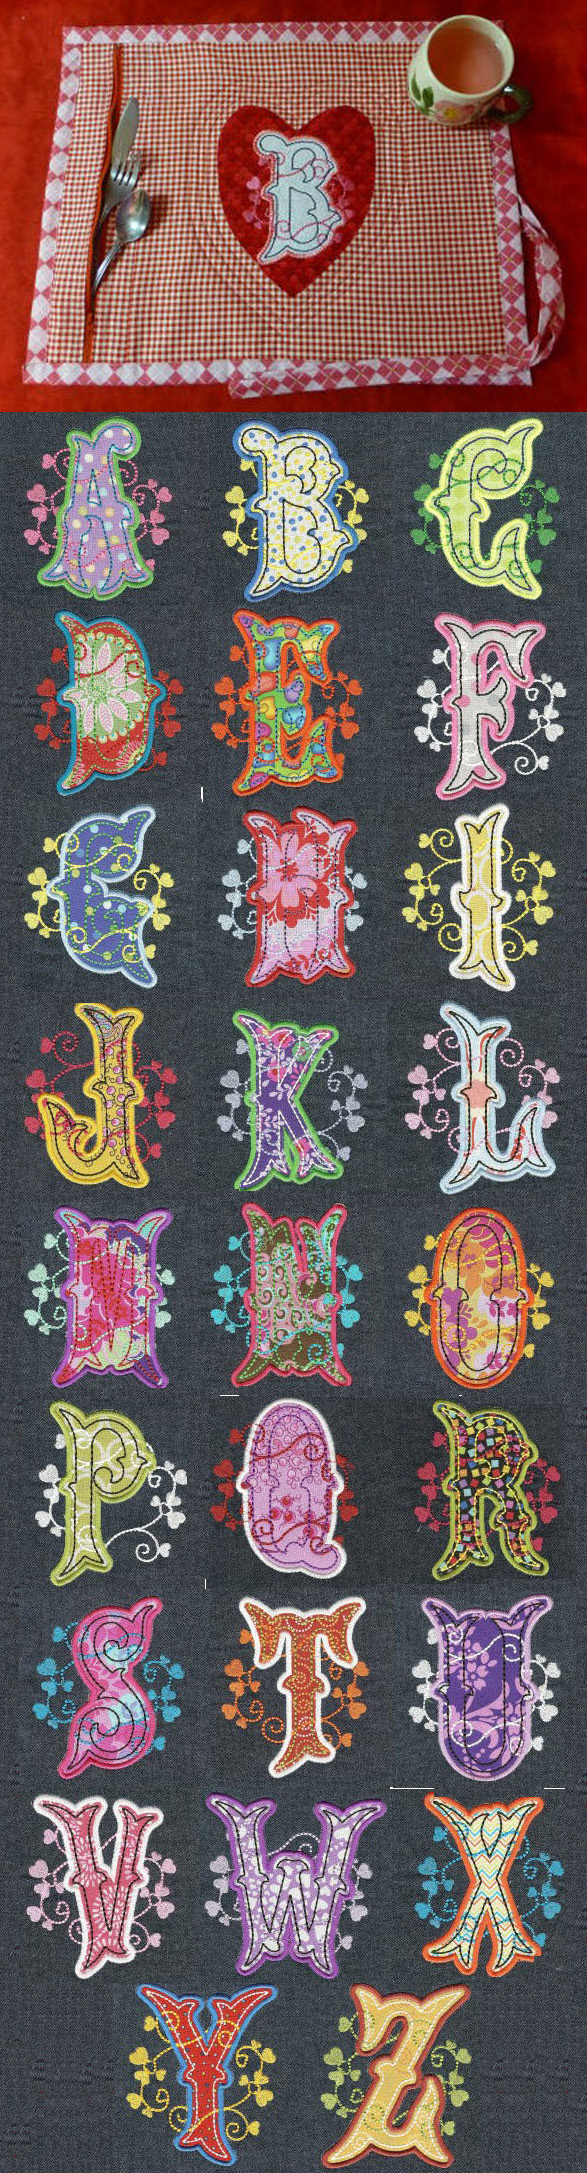 Heartsong applique alphabet design set available for instant